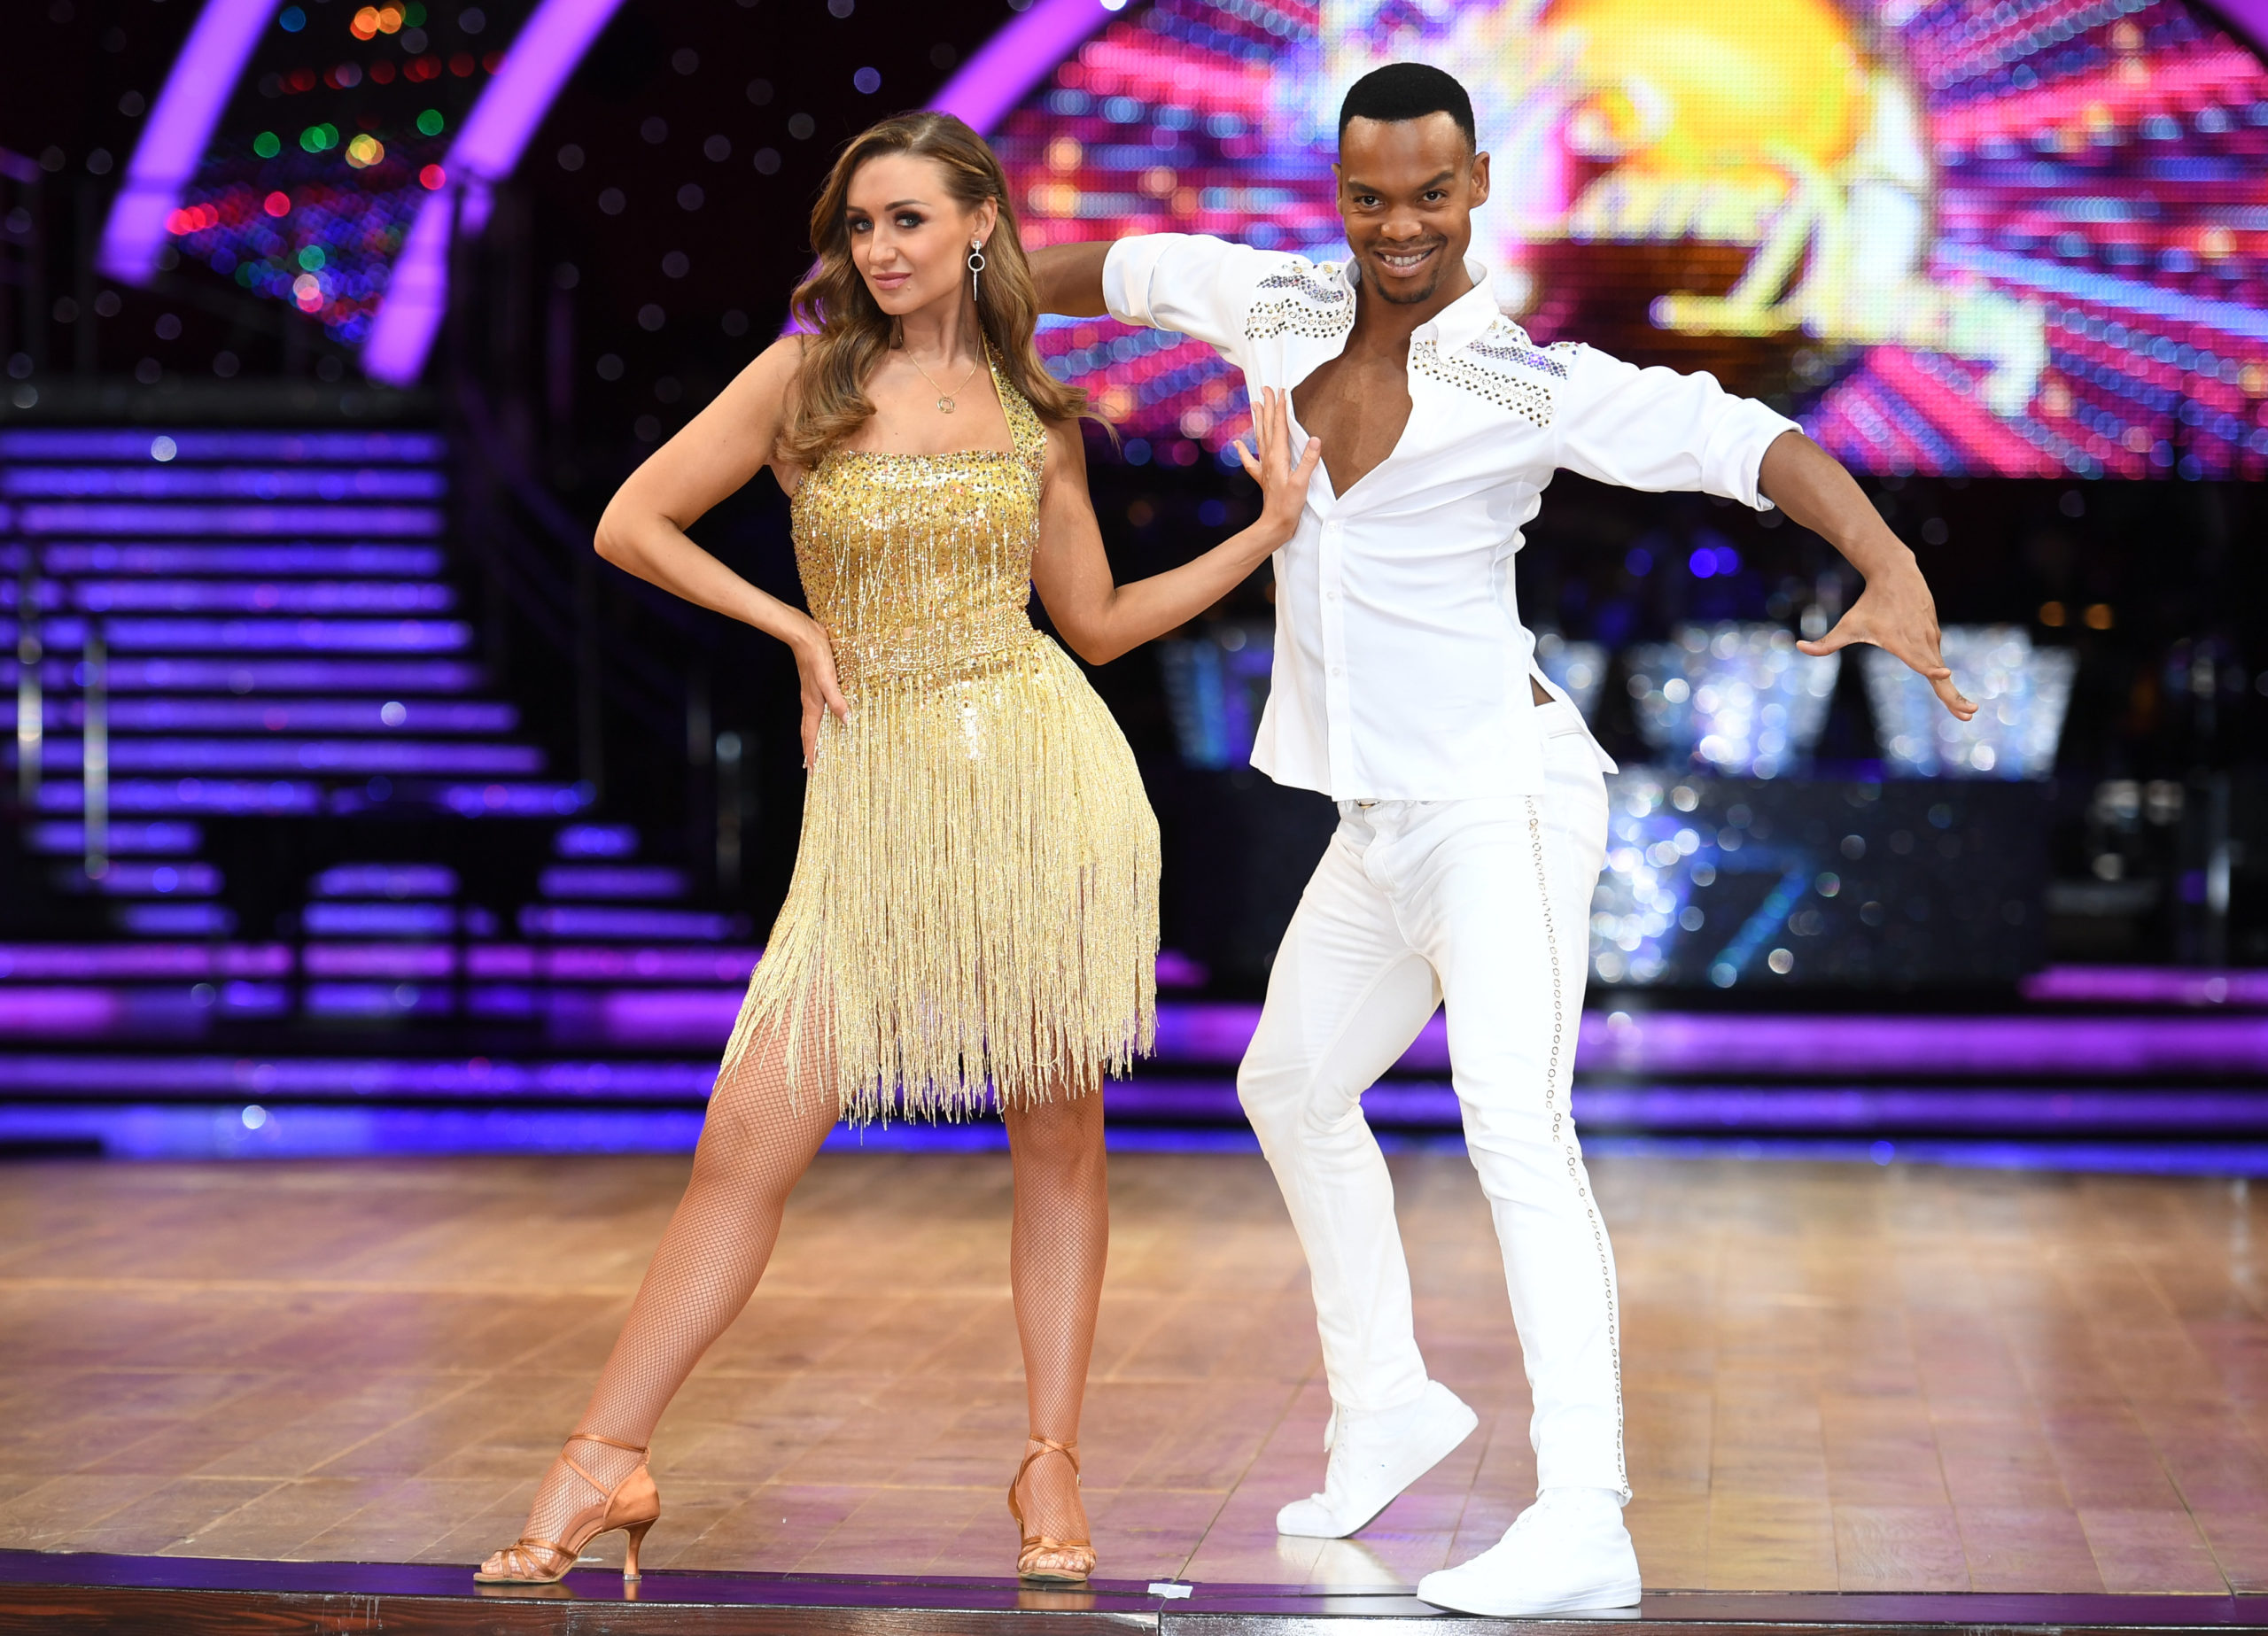 Strictly Come Dancing pro Johannes Radebe